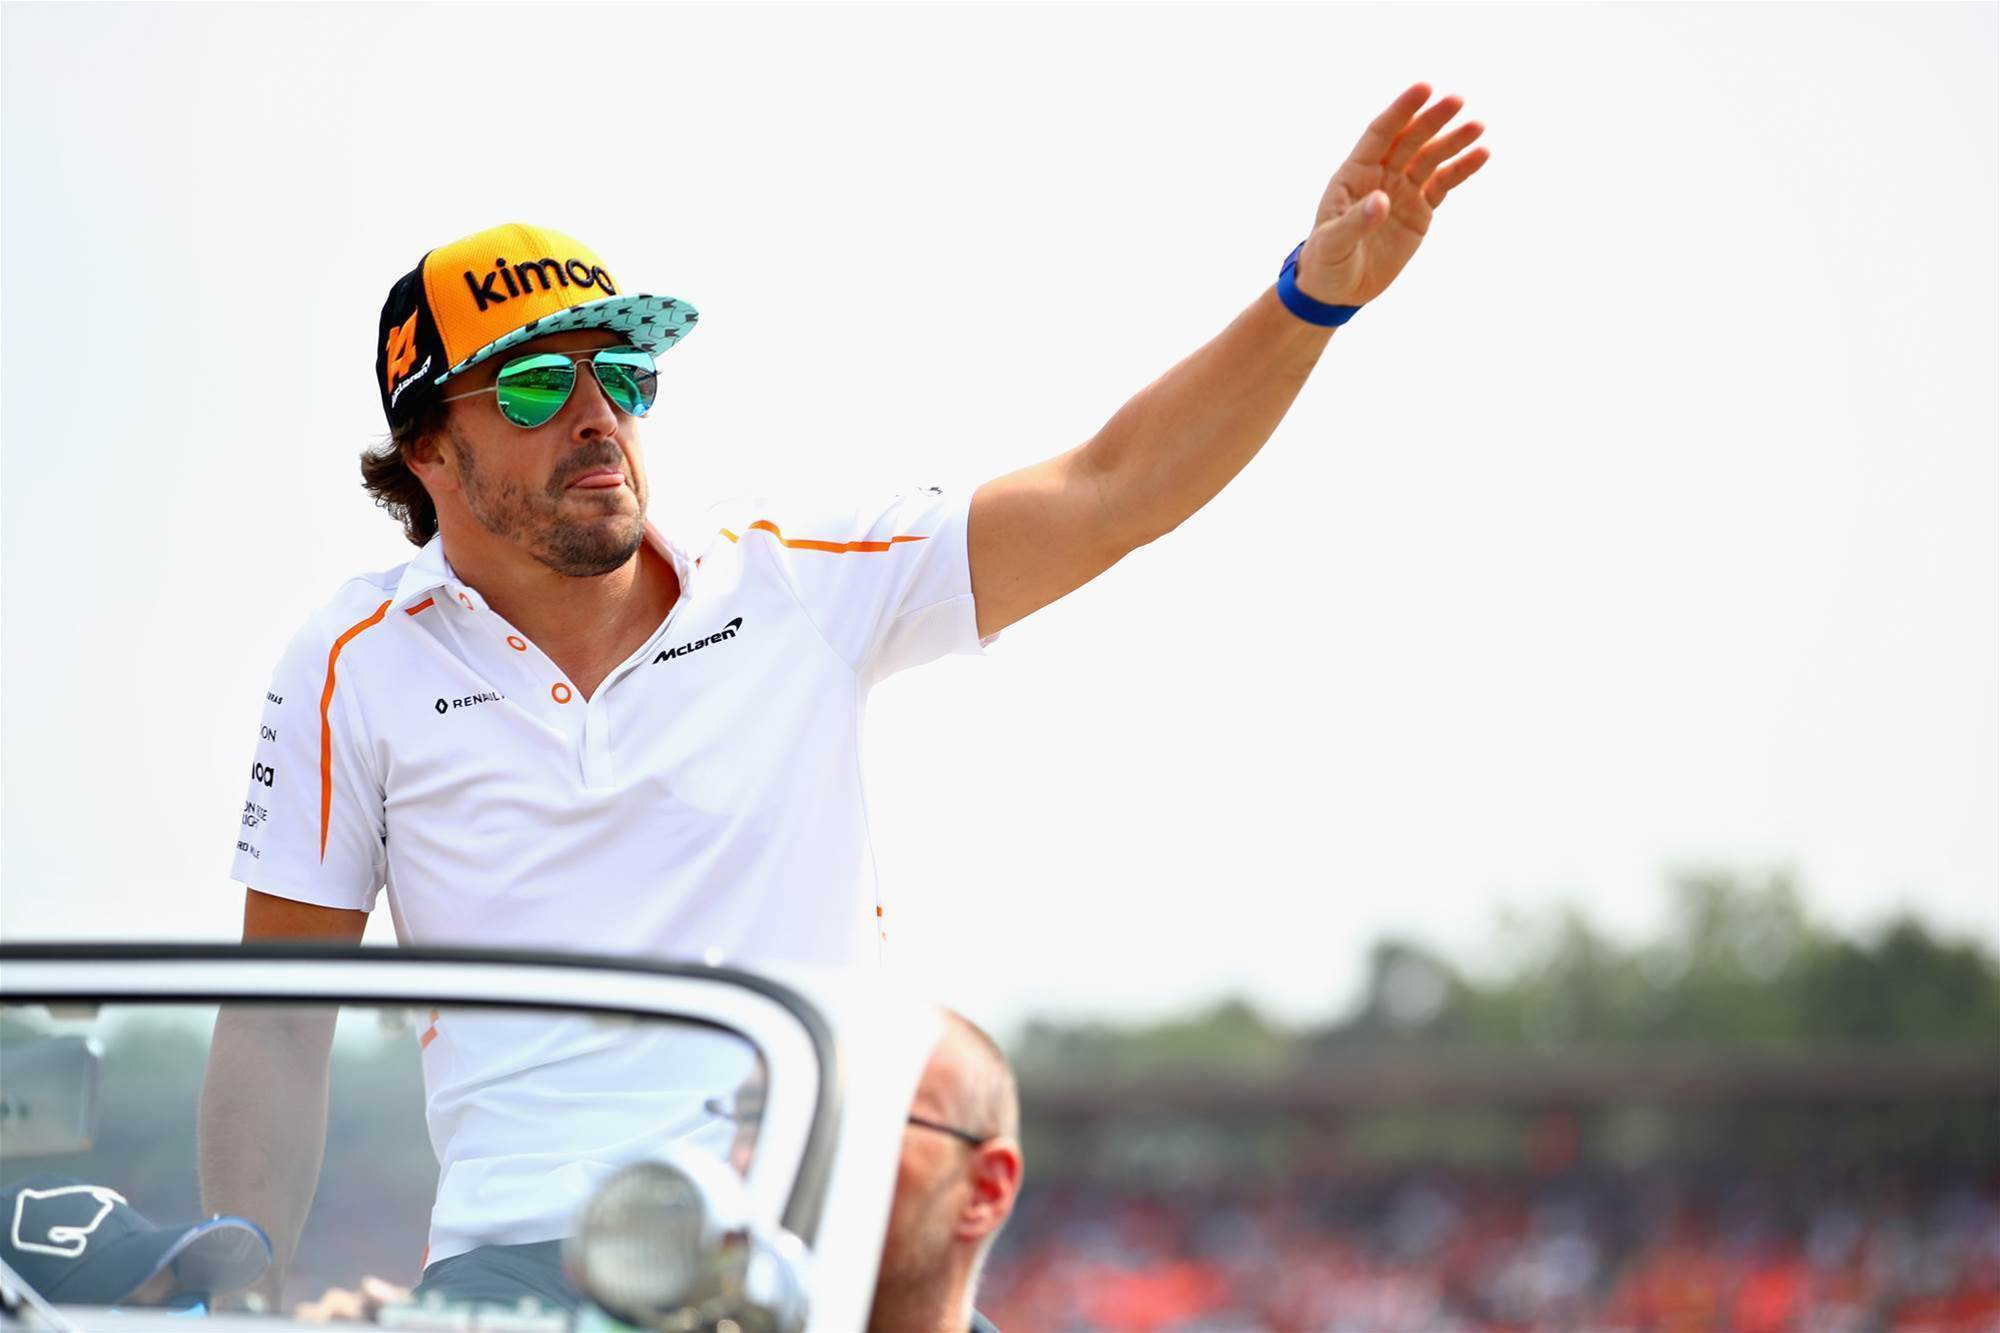 Alonso quits F1